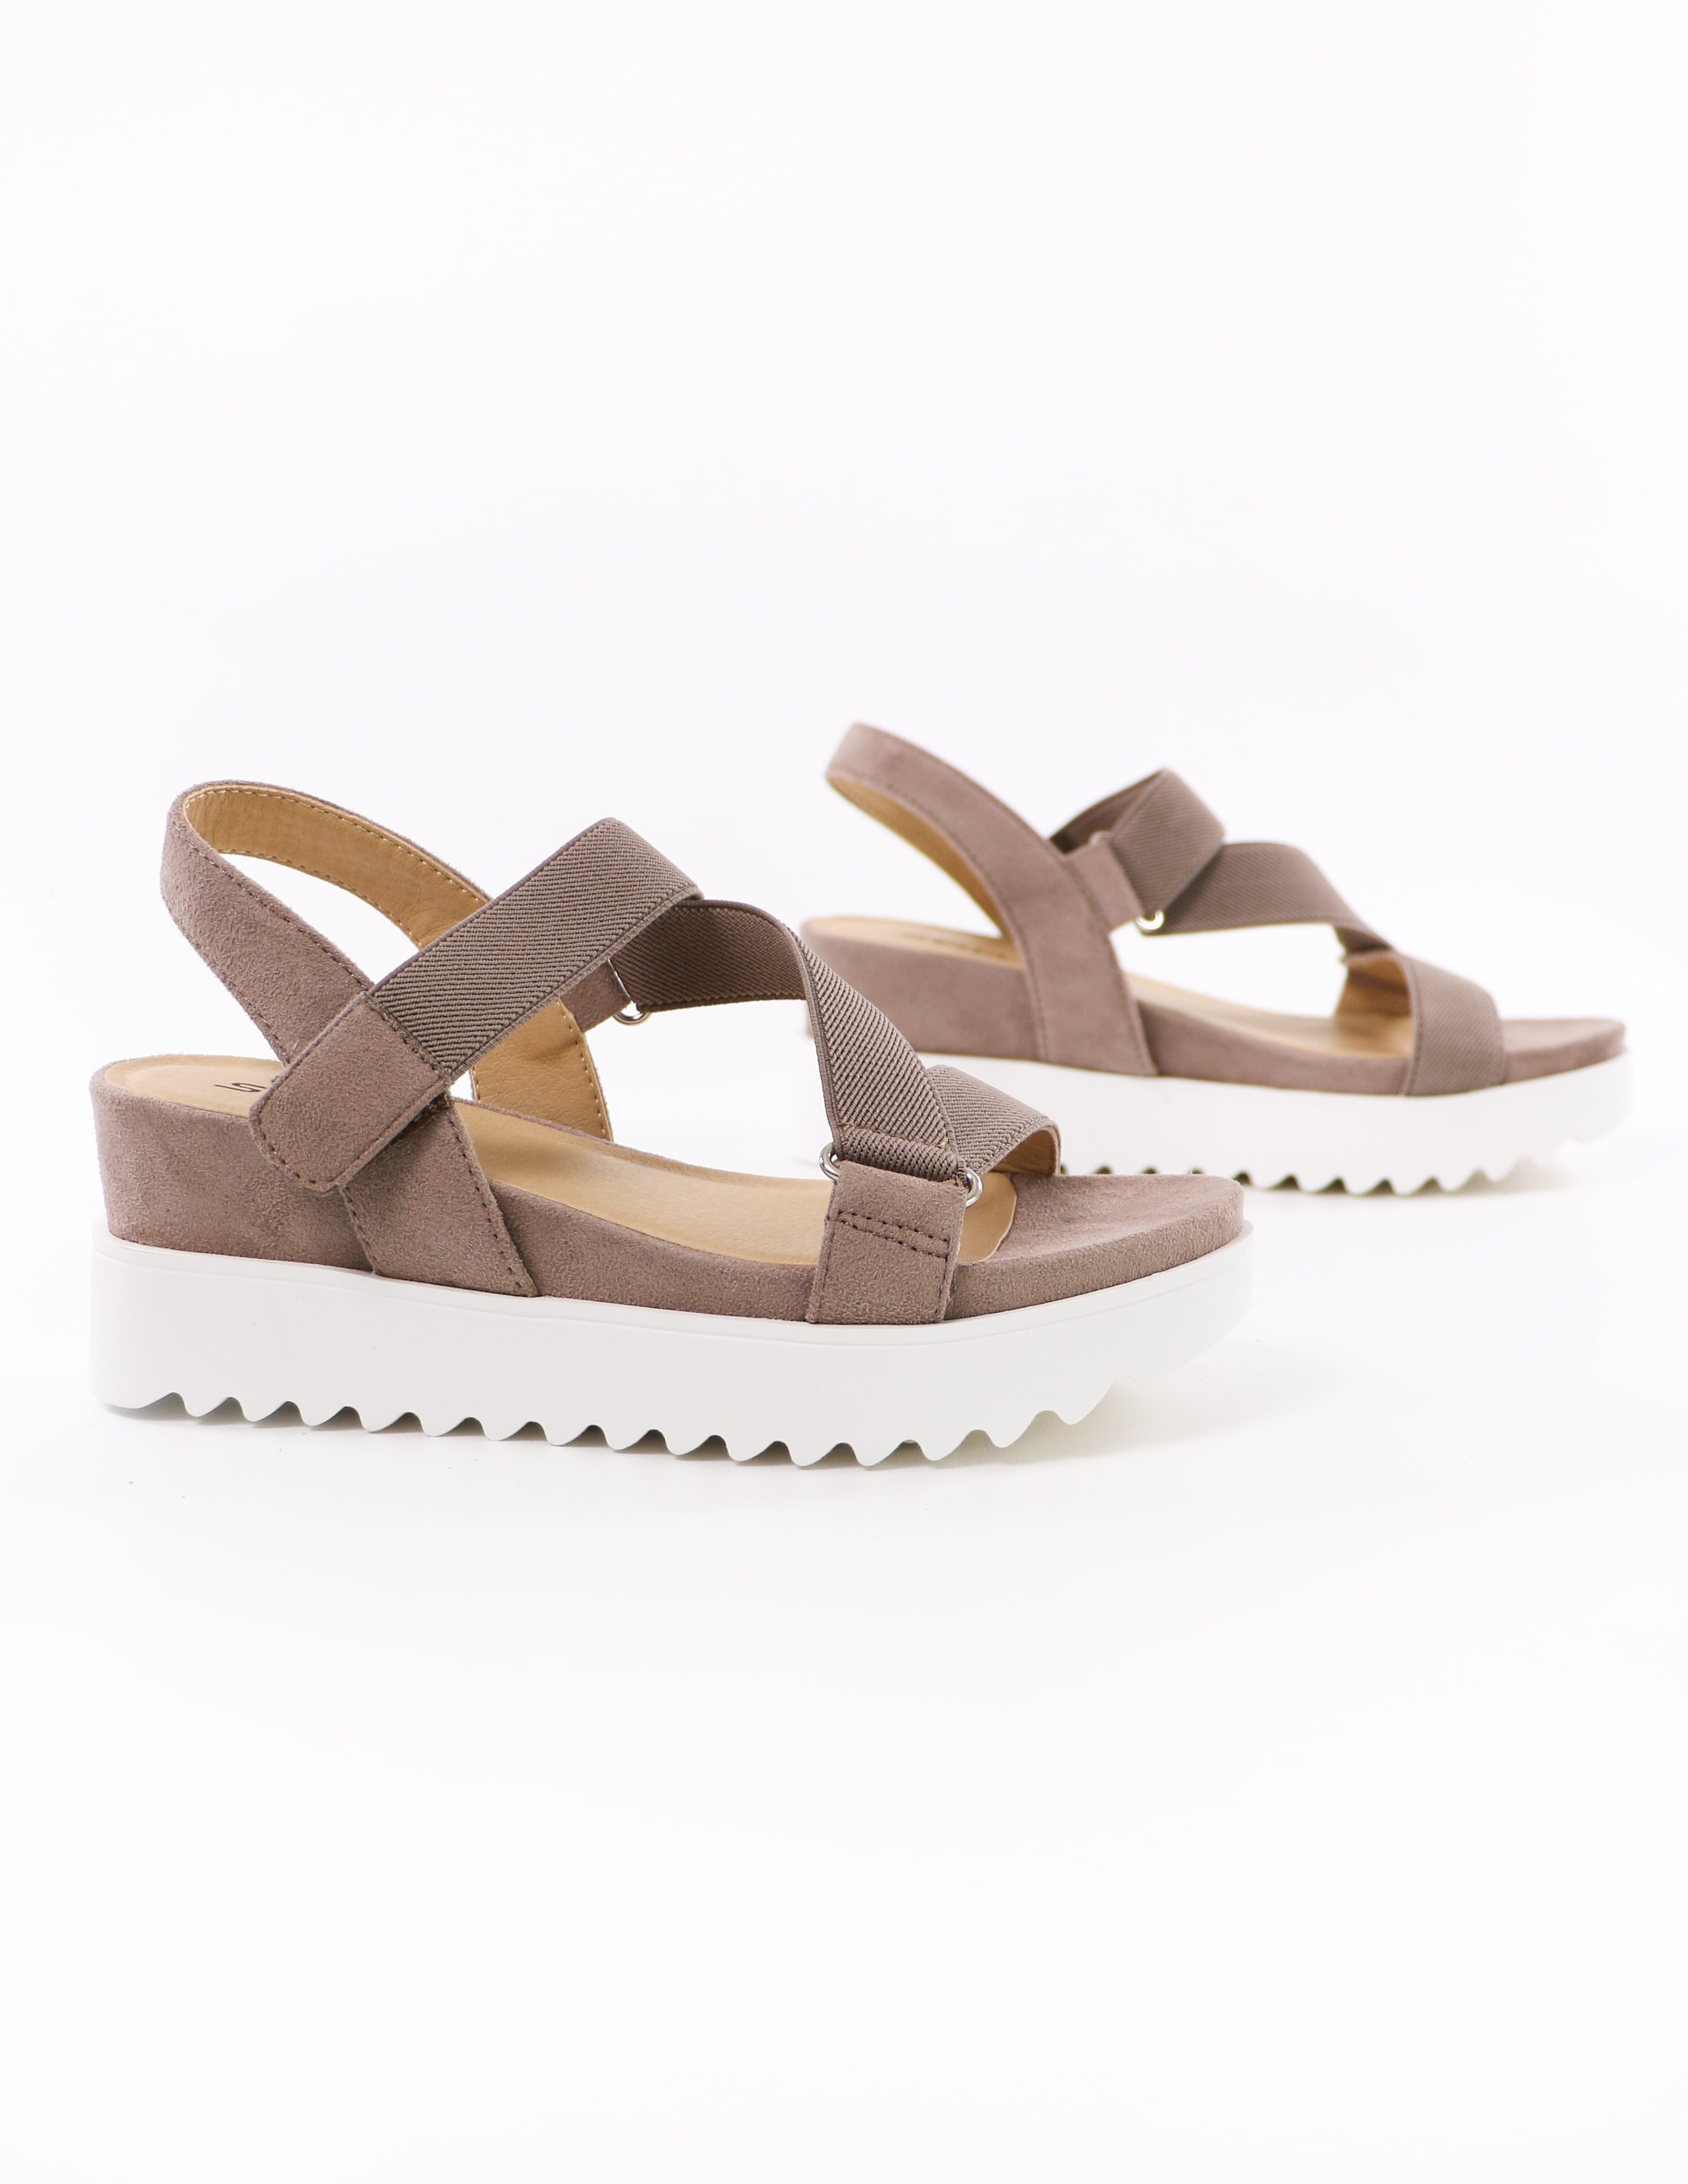 close up of the taupe strappy go lucky sandals on white background - elle bleu shoes